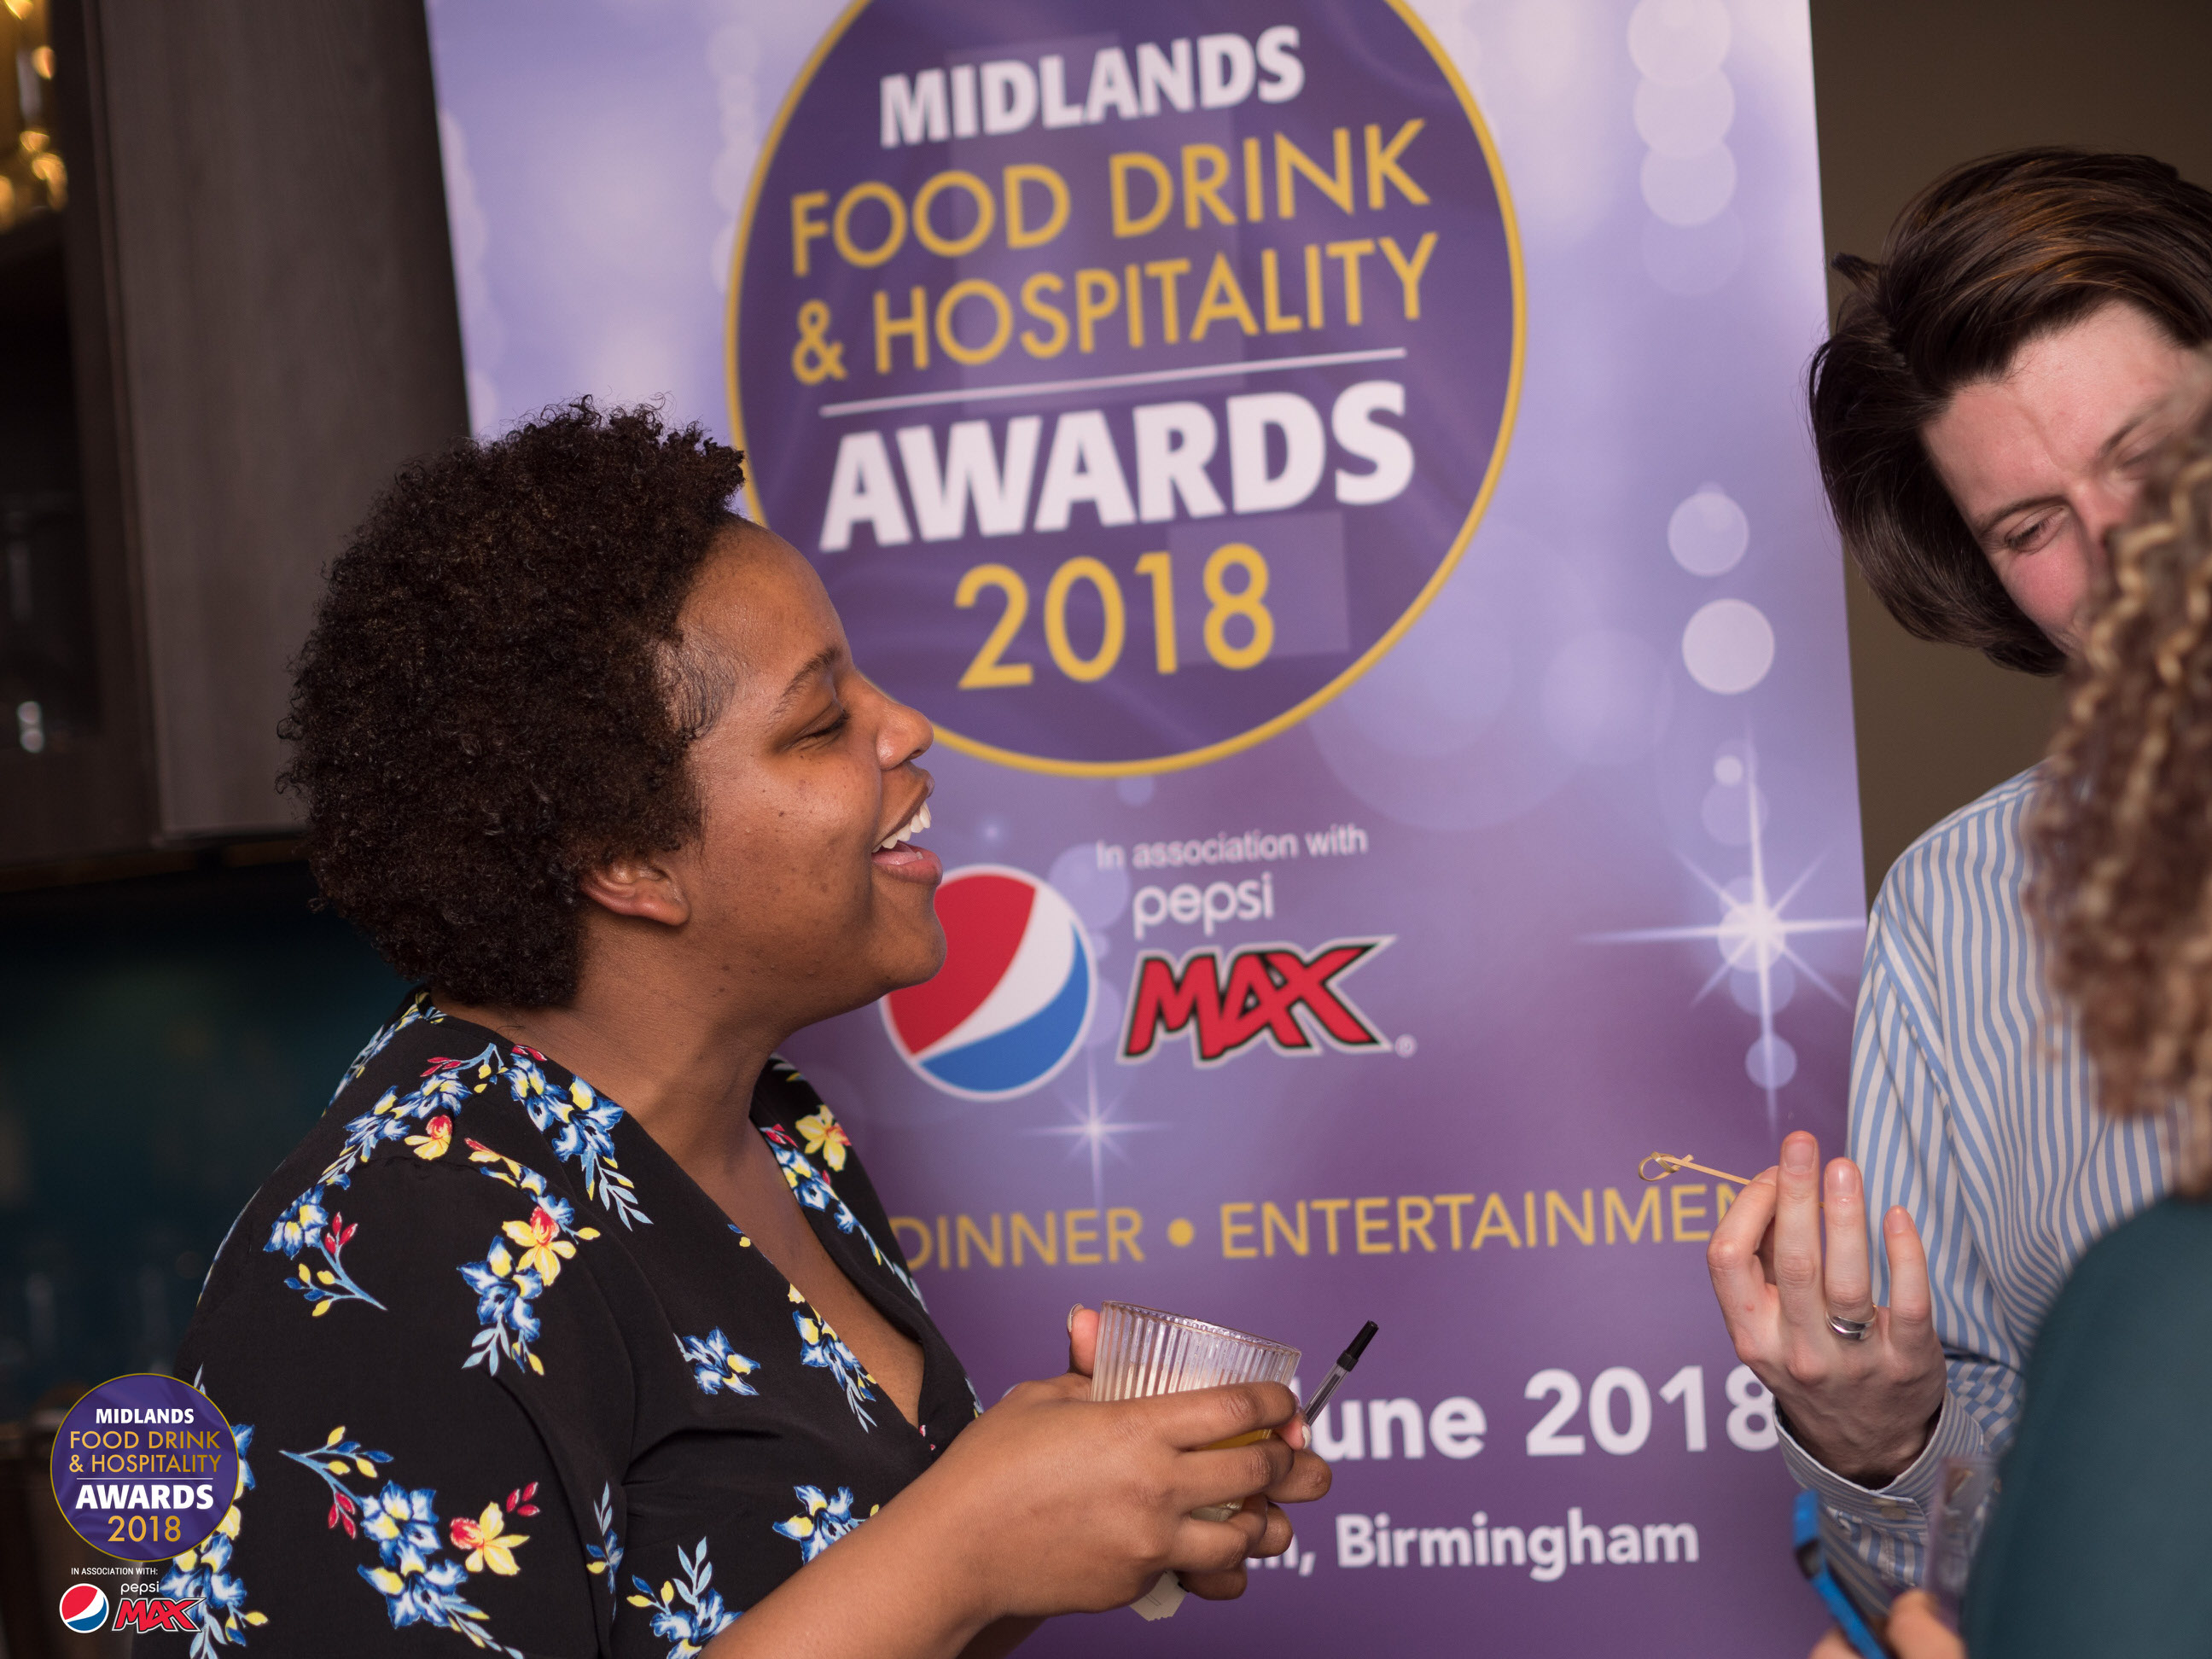 Just One Week Left To Nominate For The MFDH Awards.